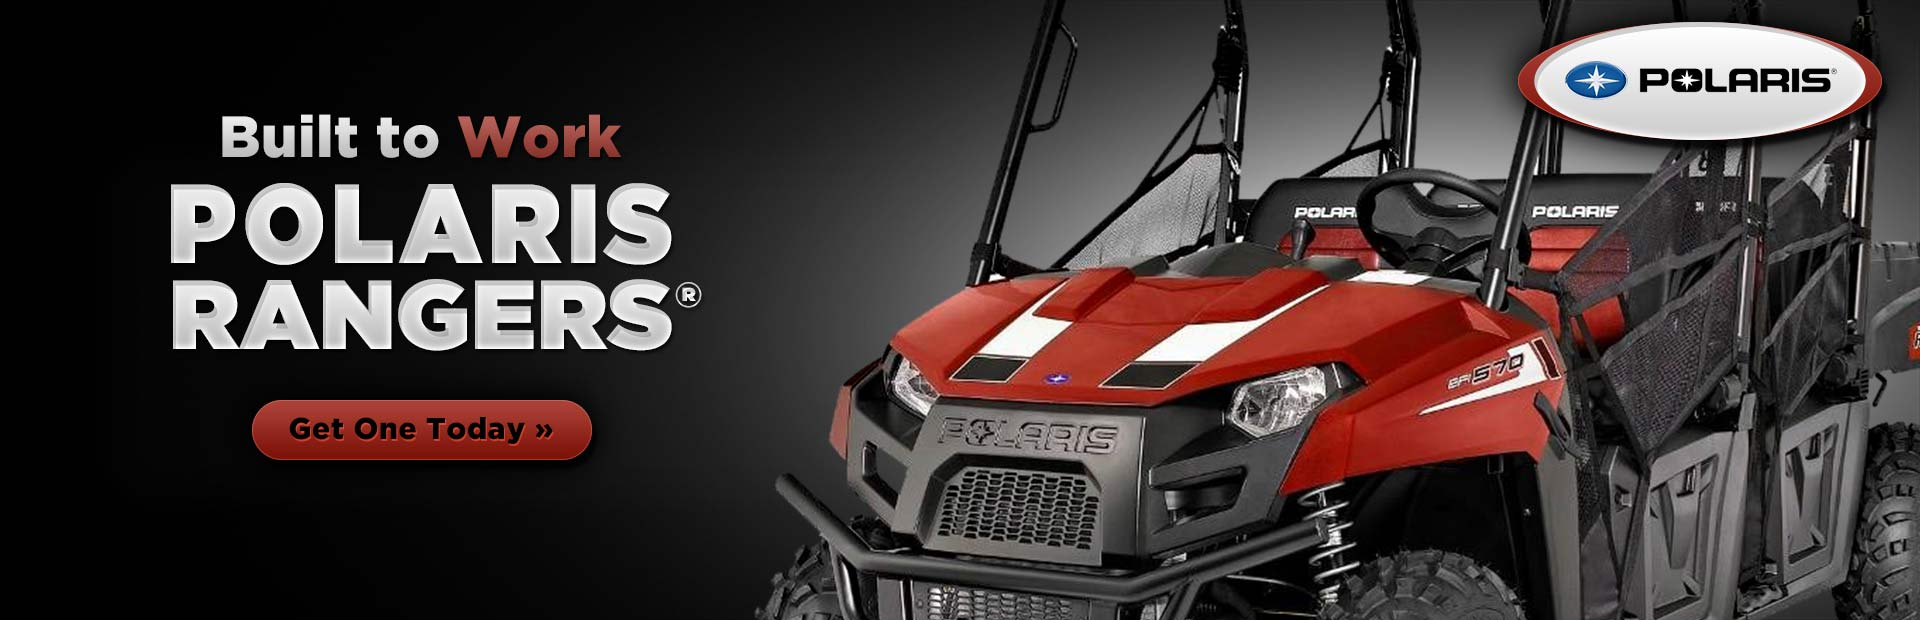 Polaris Rangers®: Click here to check out the entire lineup online.